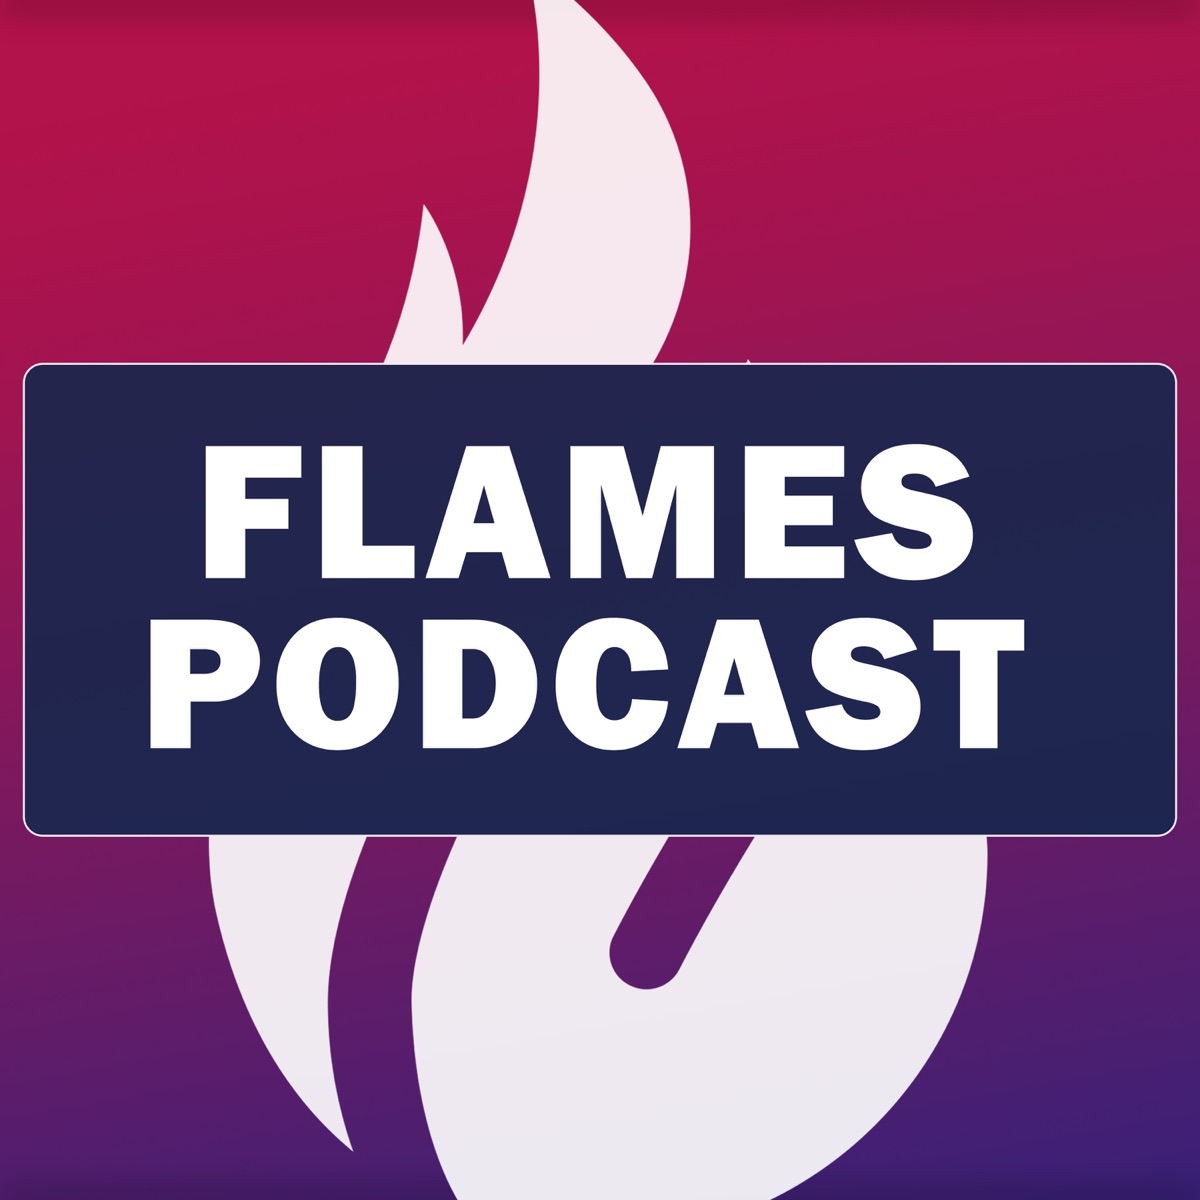 Flames Podcast